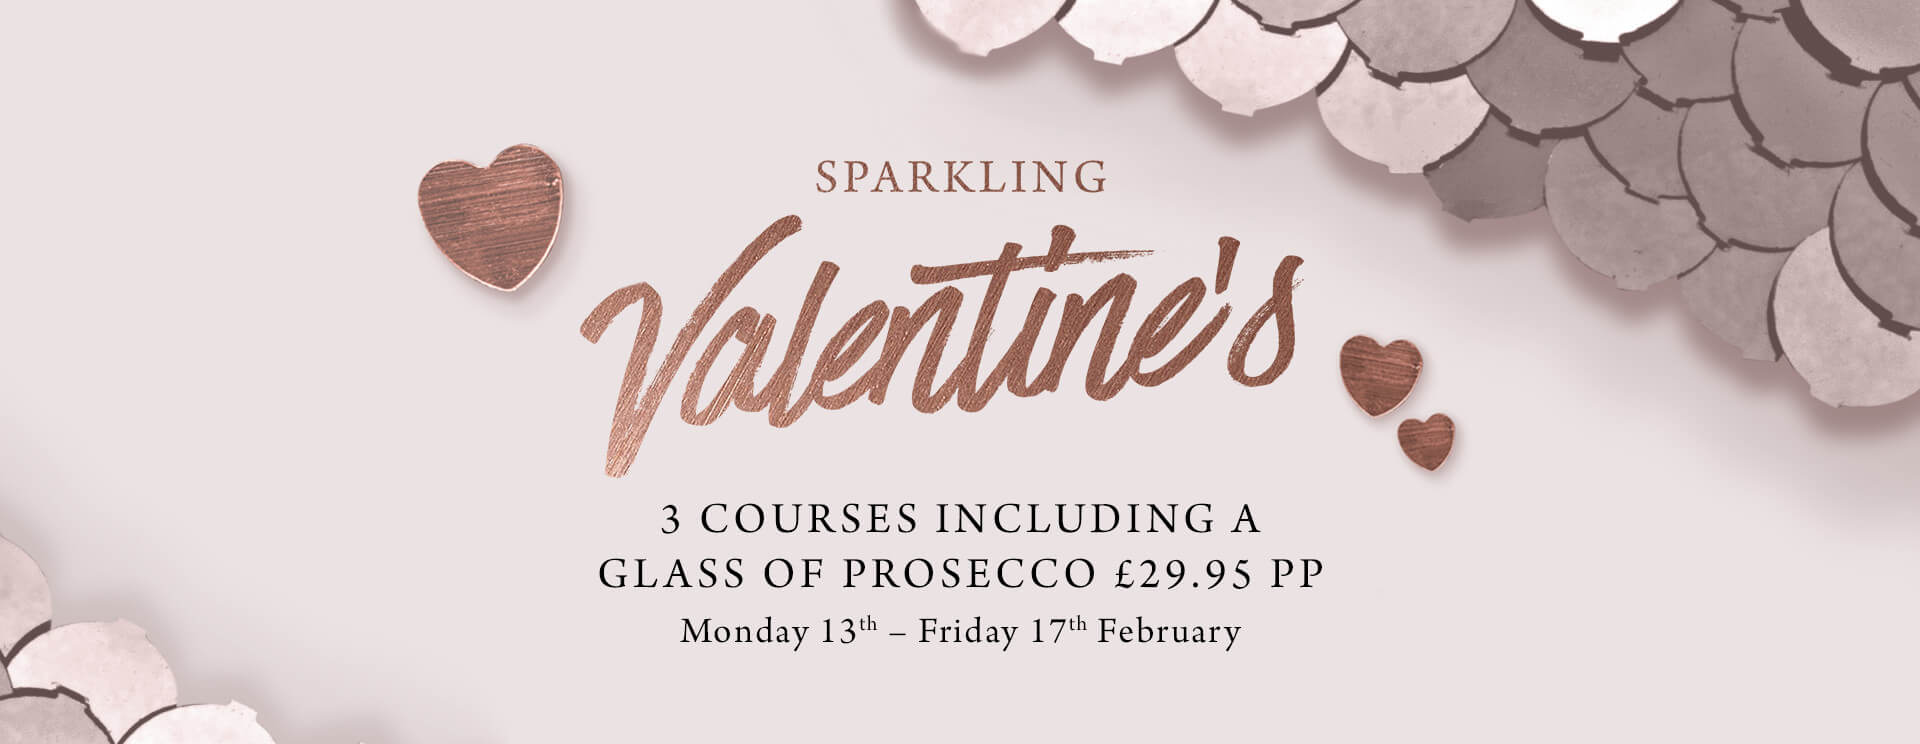 Valentines at The Trout Inn